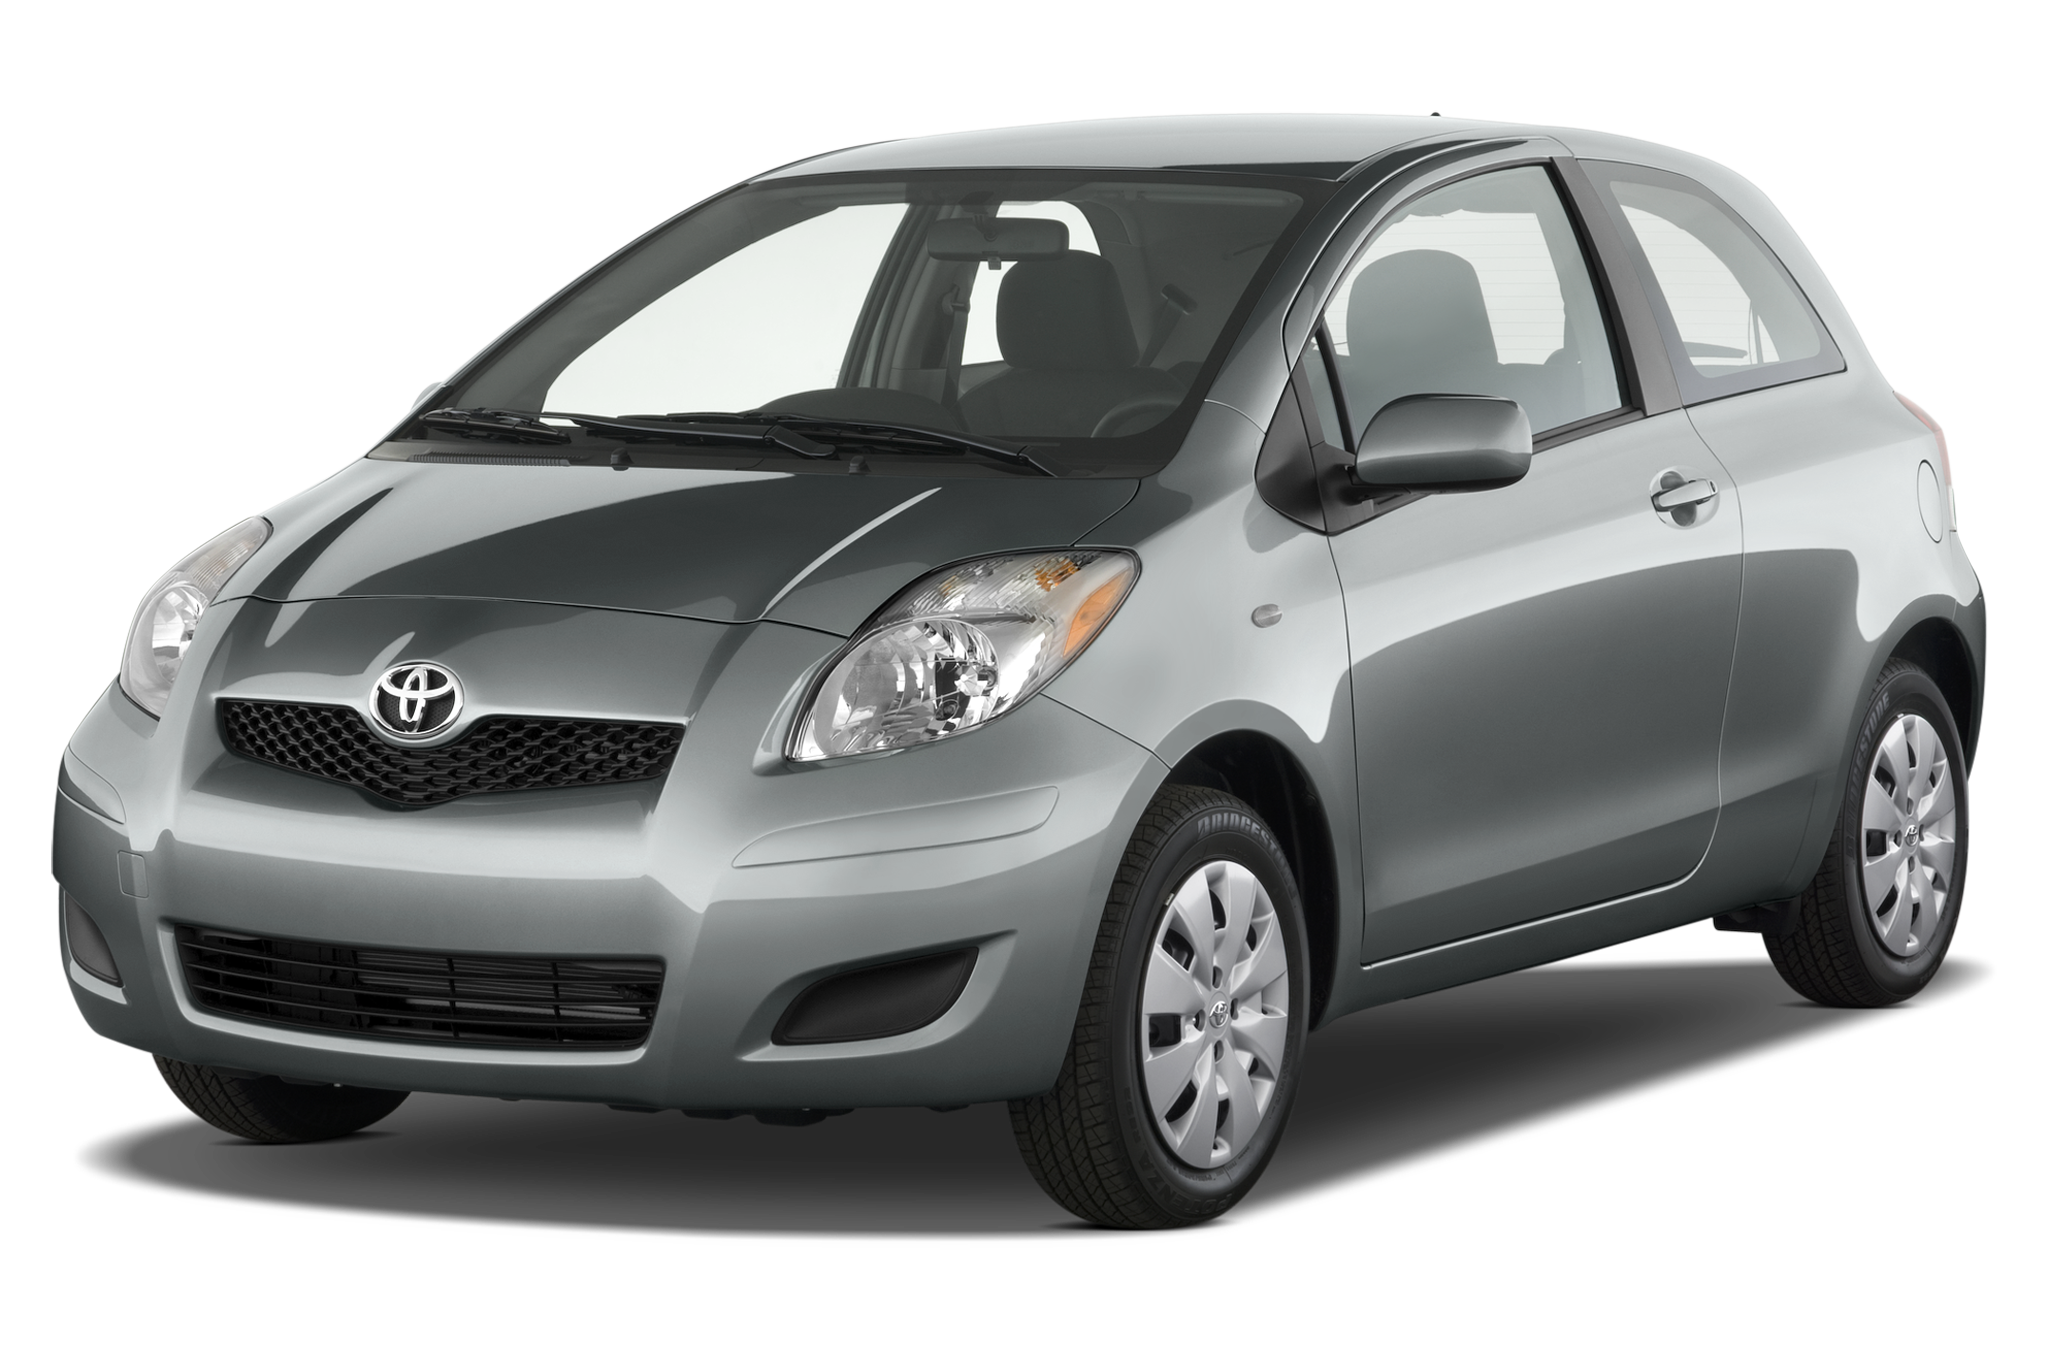 Toyota Yaris II 2005 - 2009 Hatchback 3 door #4